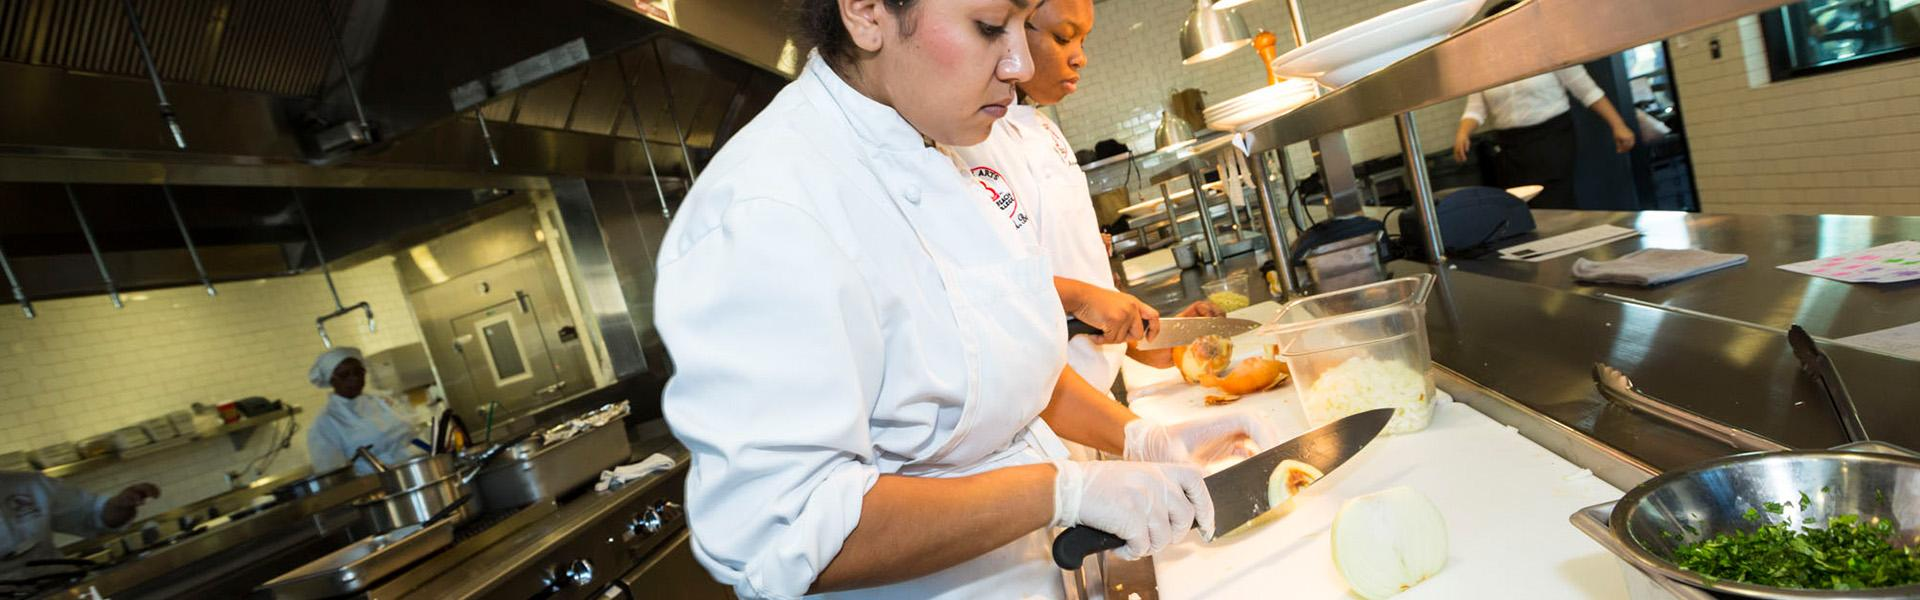 LBCC Culinary Arts Students working in LBCC kitchen